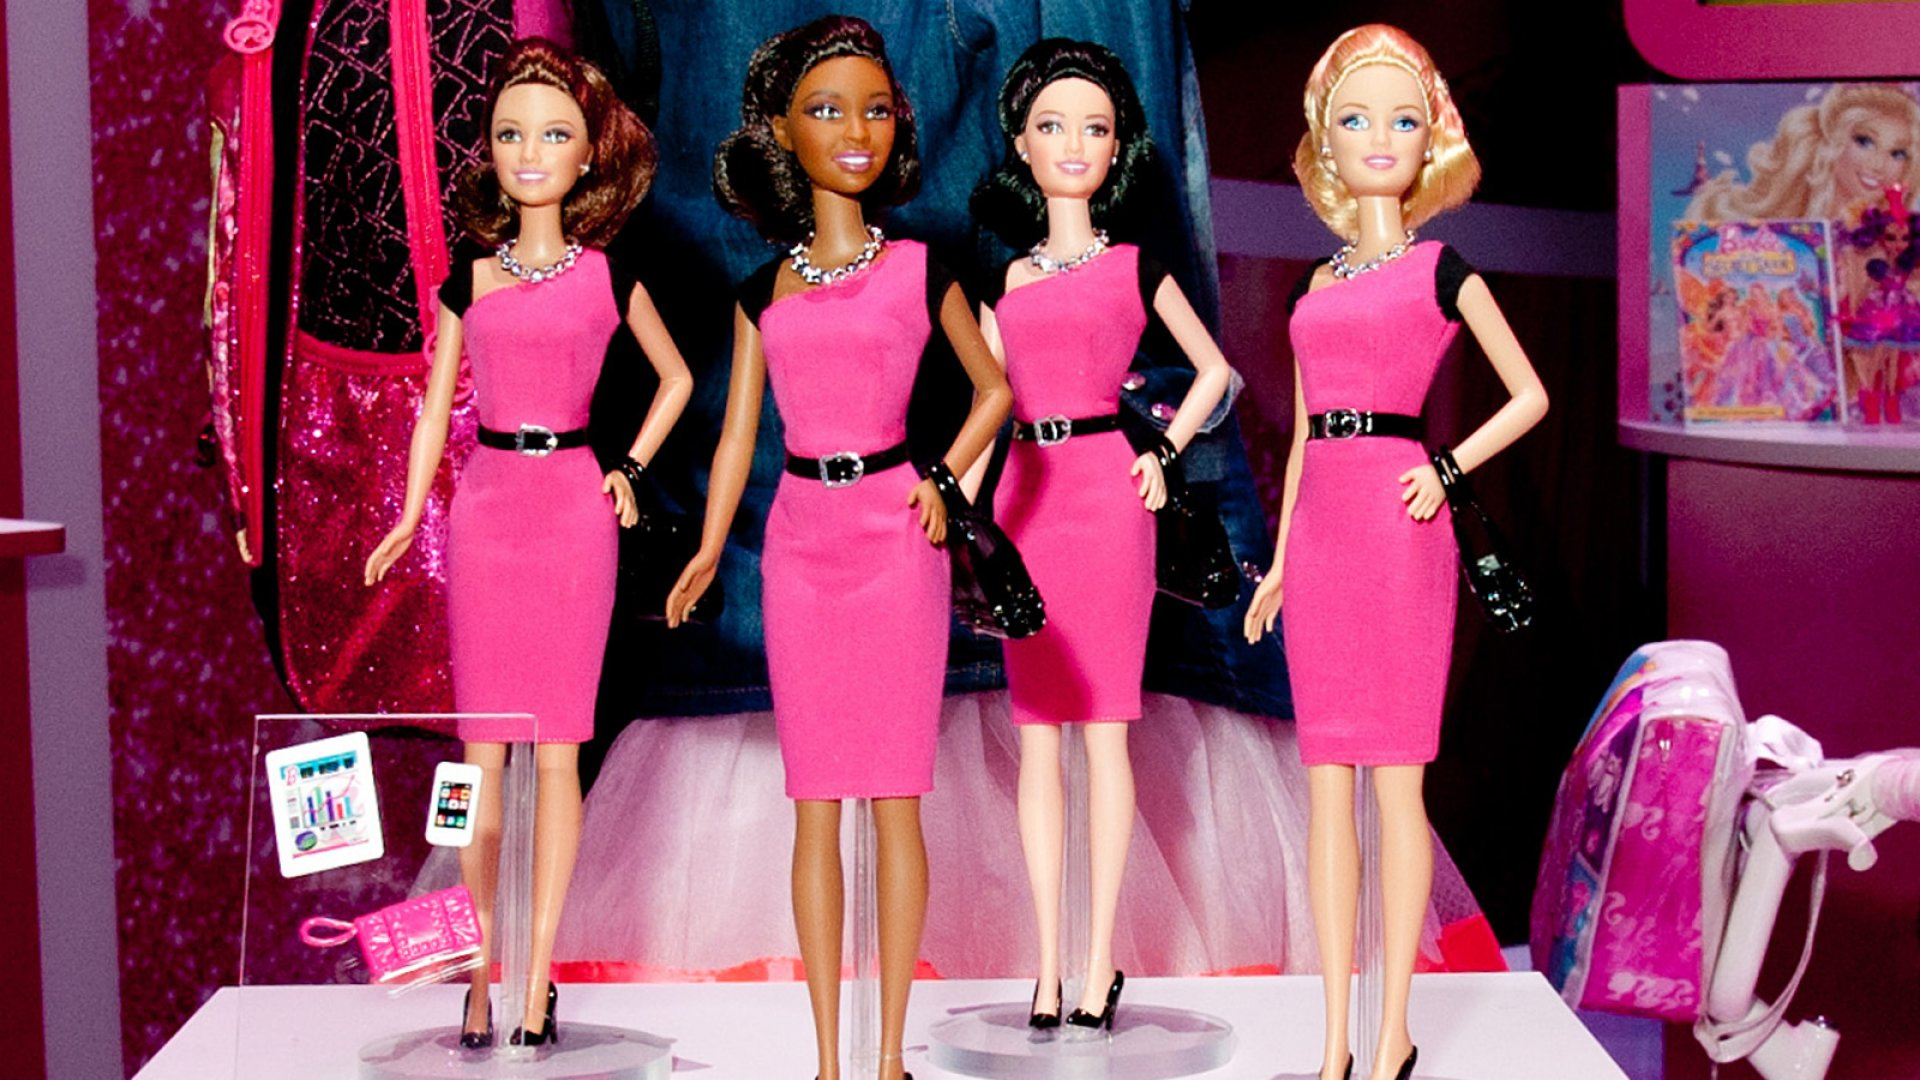 Newest Barbie Is an Entrepreneur With a Tiny Tablet and Smartphone